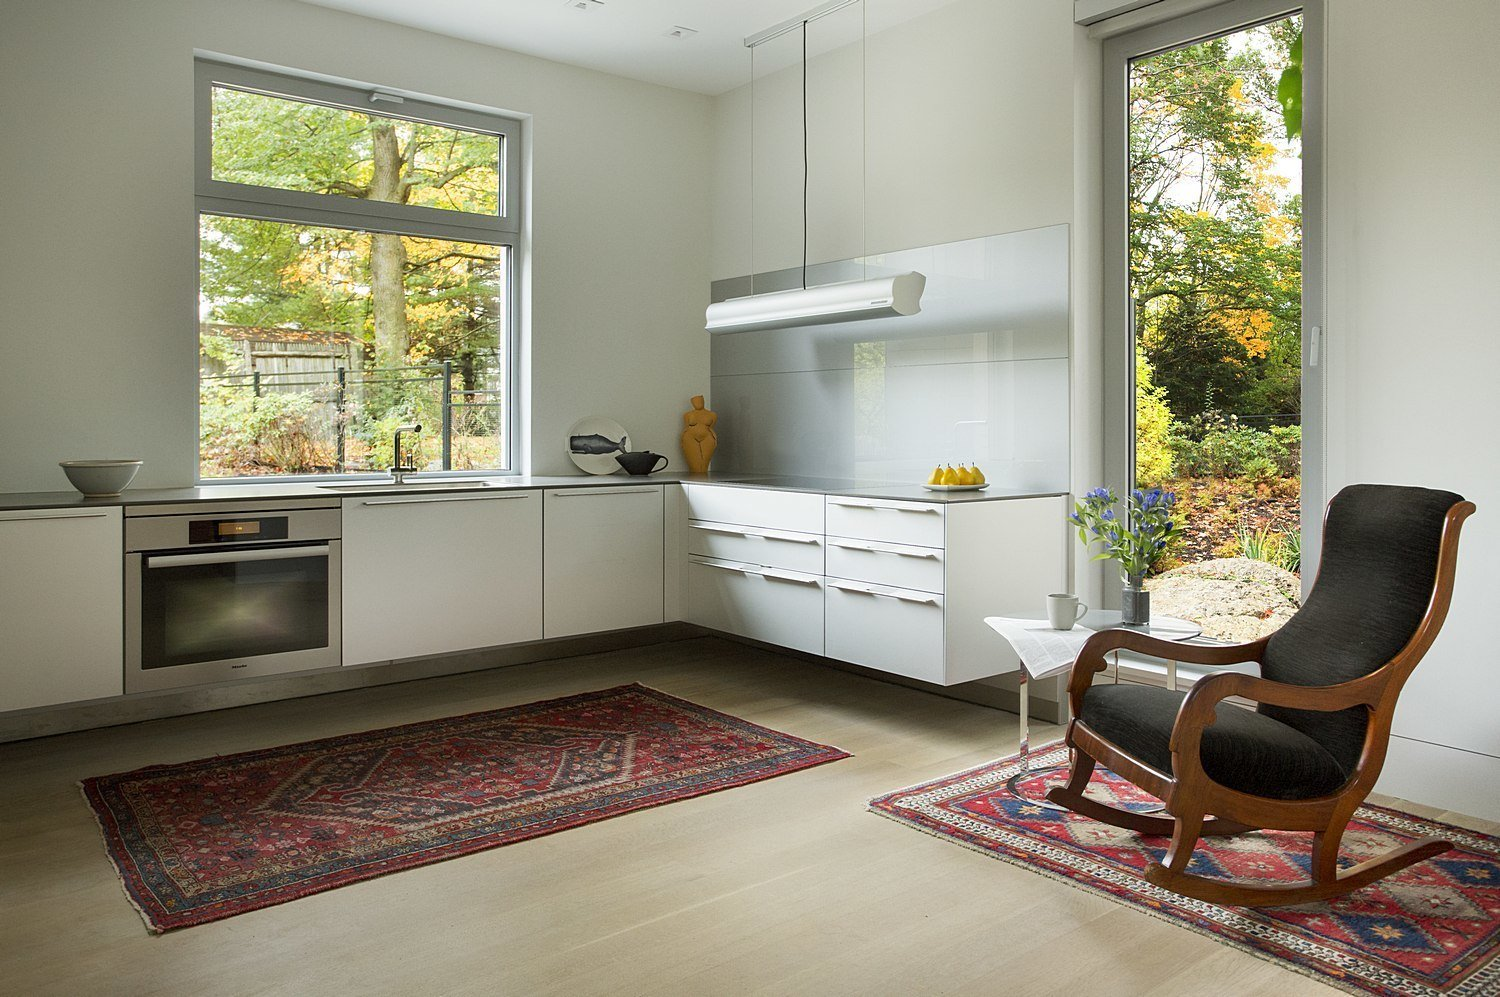 Kitchen and White Cabinet  Brookline Residence by ZeroEnergy Design